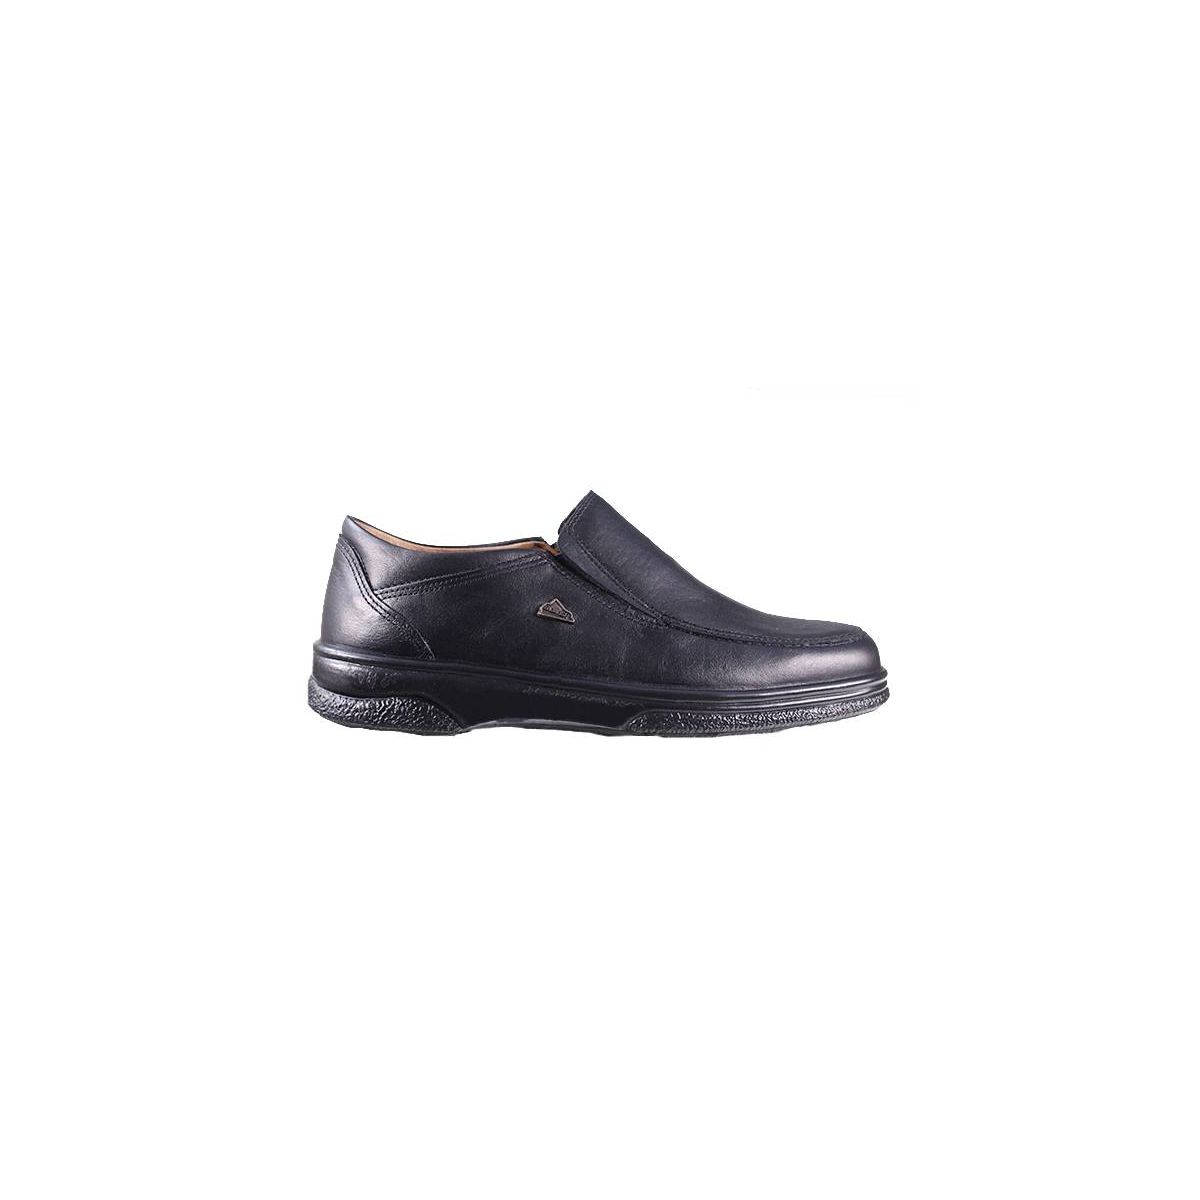 boxer ανδρικά loafers 11534 ΜΑΥΡΟ